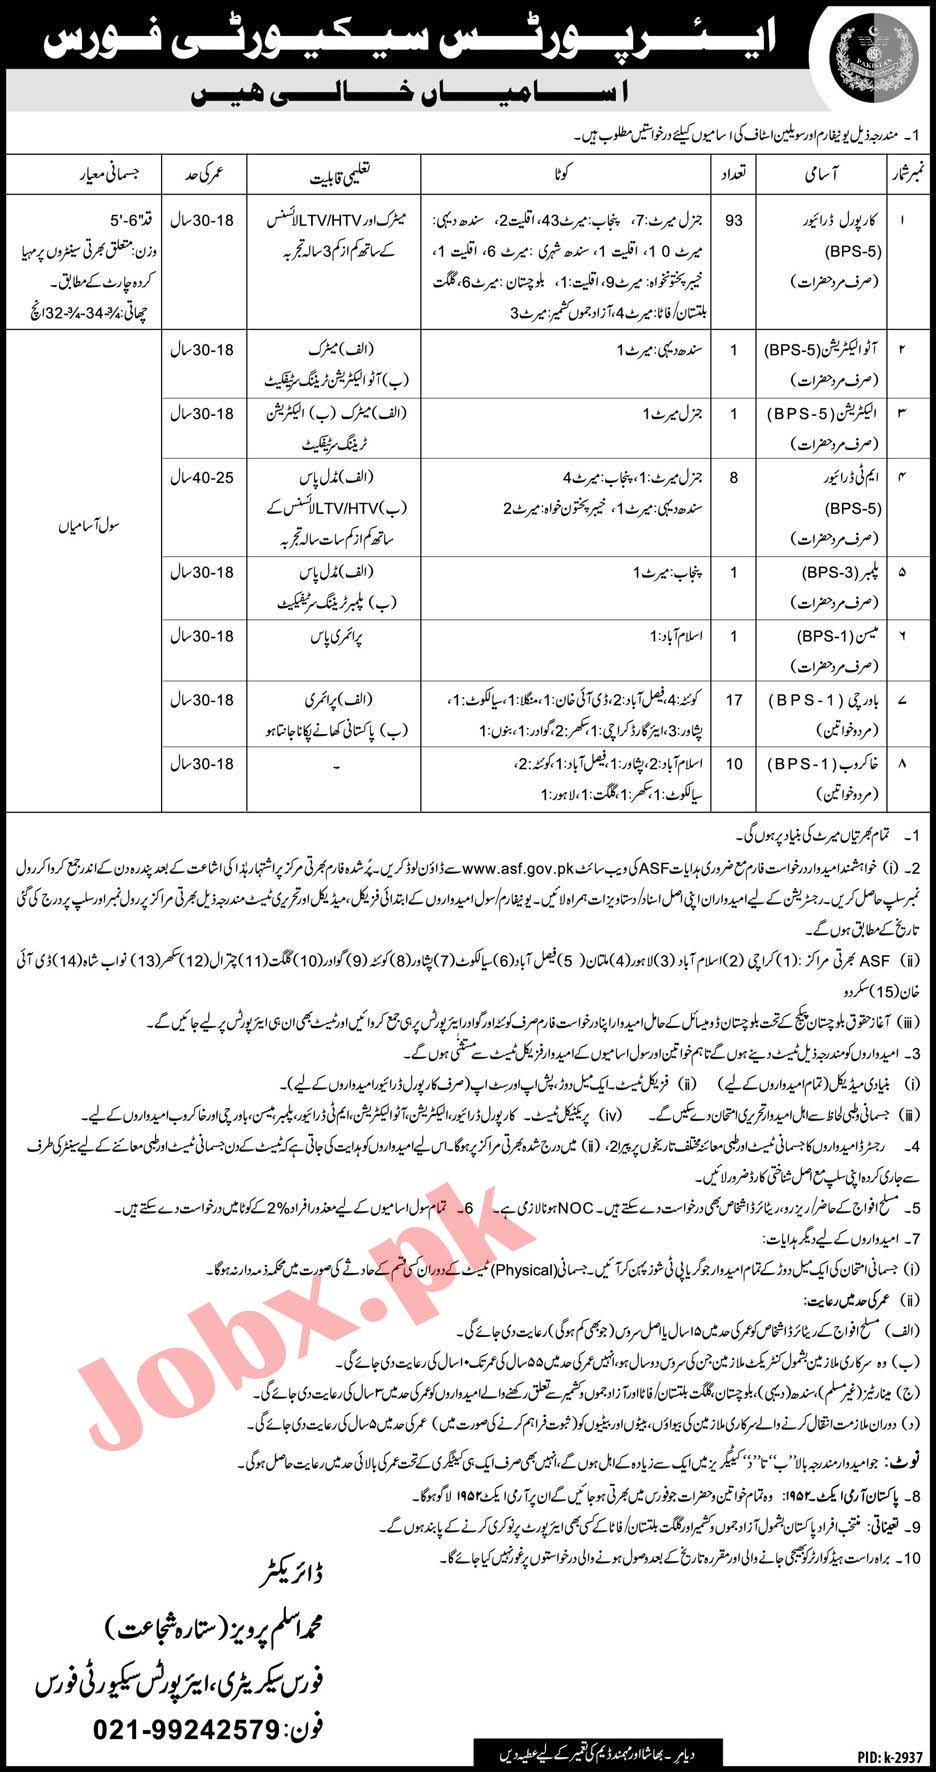 Airport Security Force ASf Jobs 2019